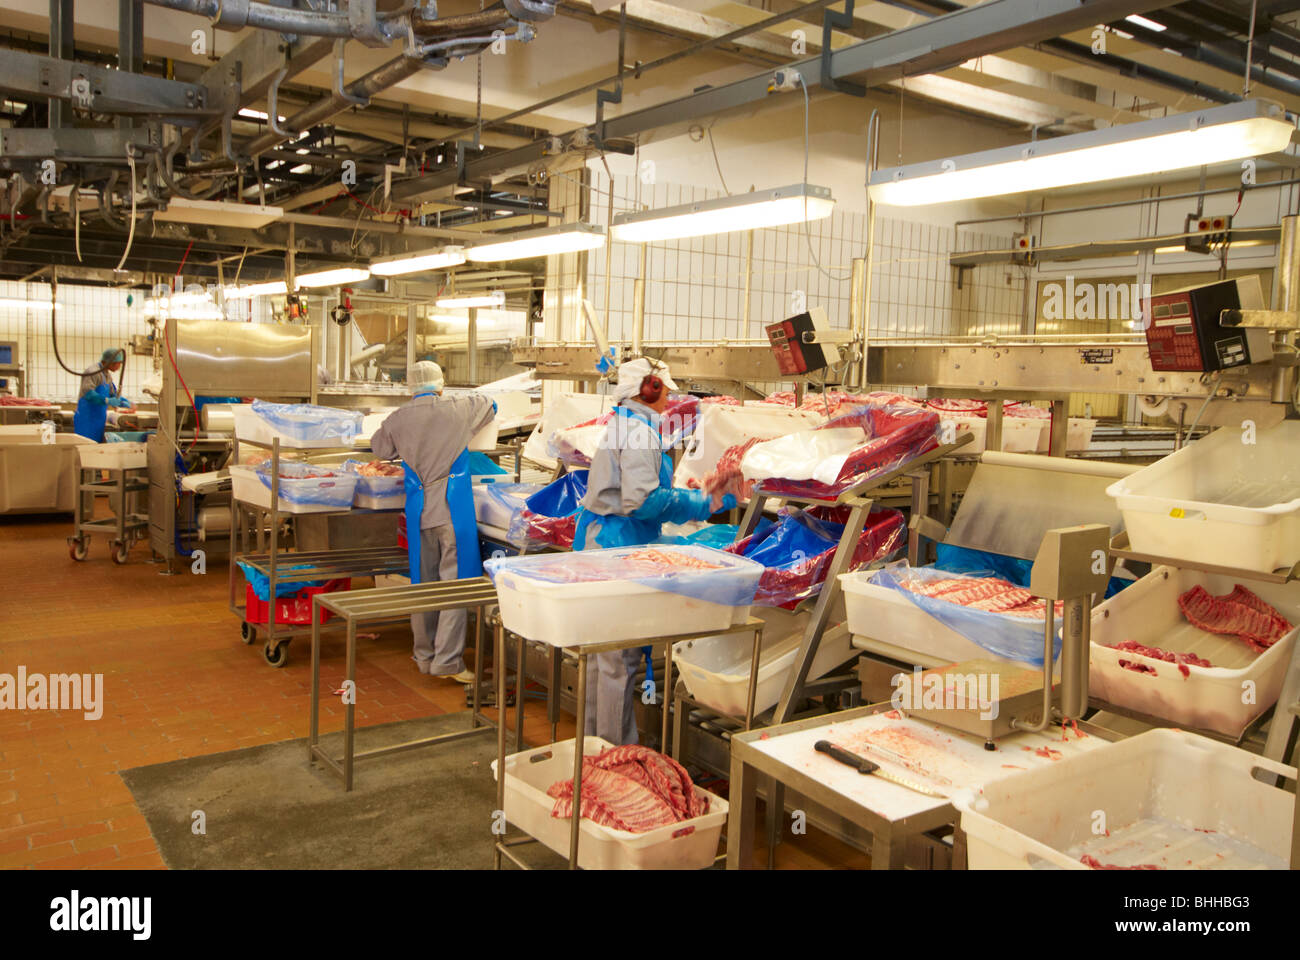 Cutting and pacaking pork for dispatch at pig meat processing plant. Danish slaughter house. - Stock Image